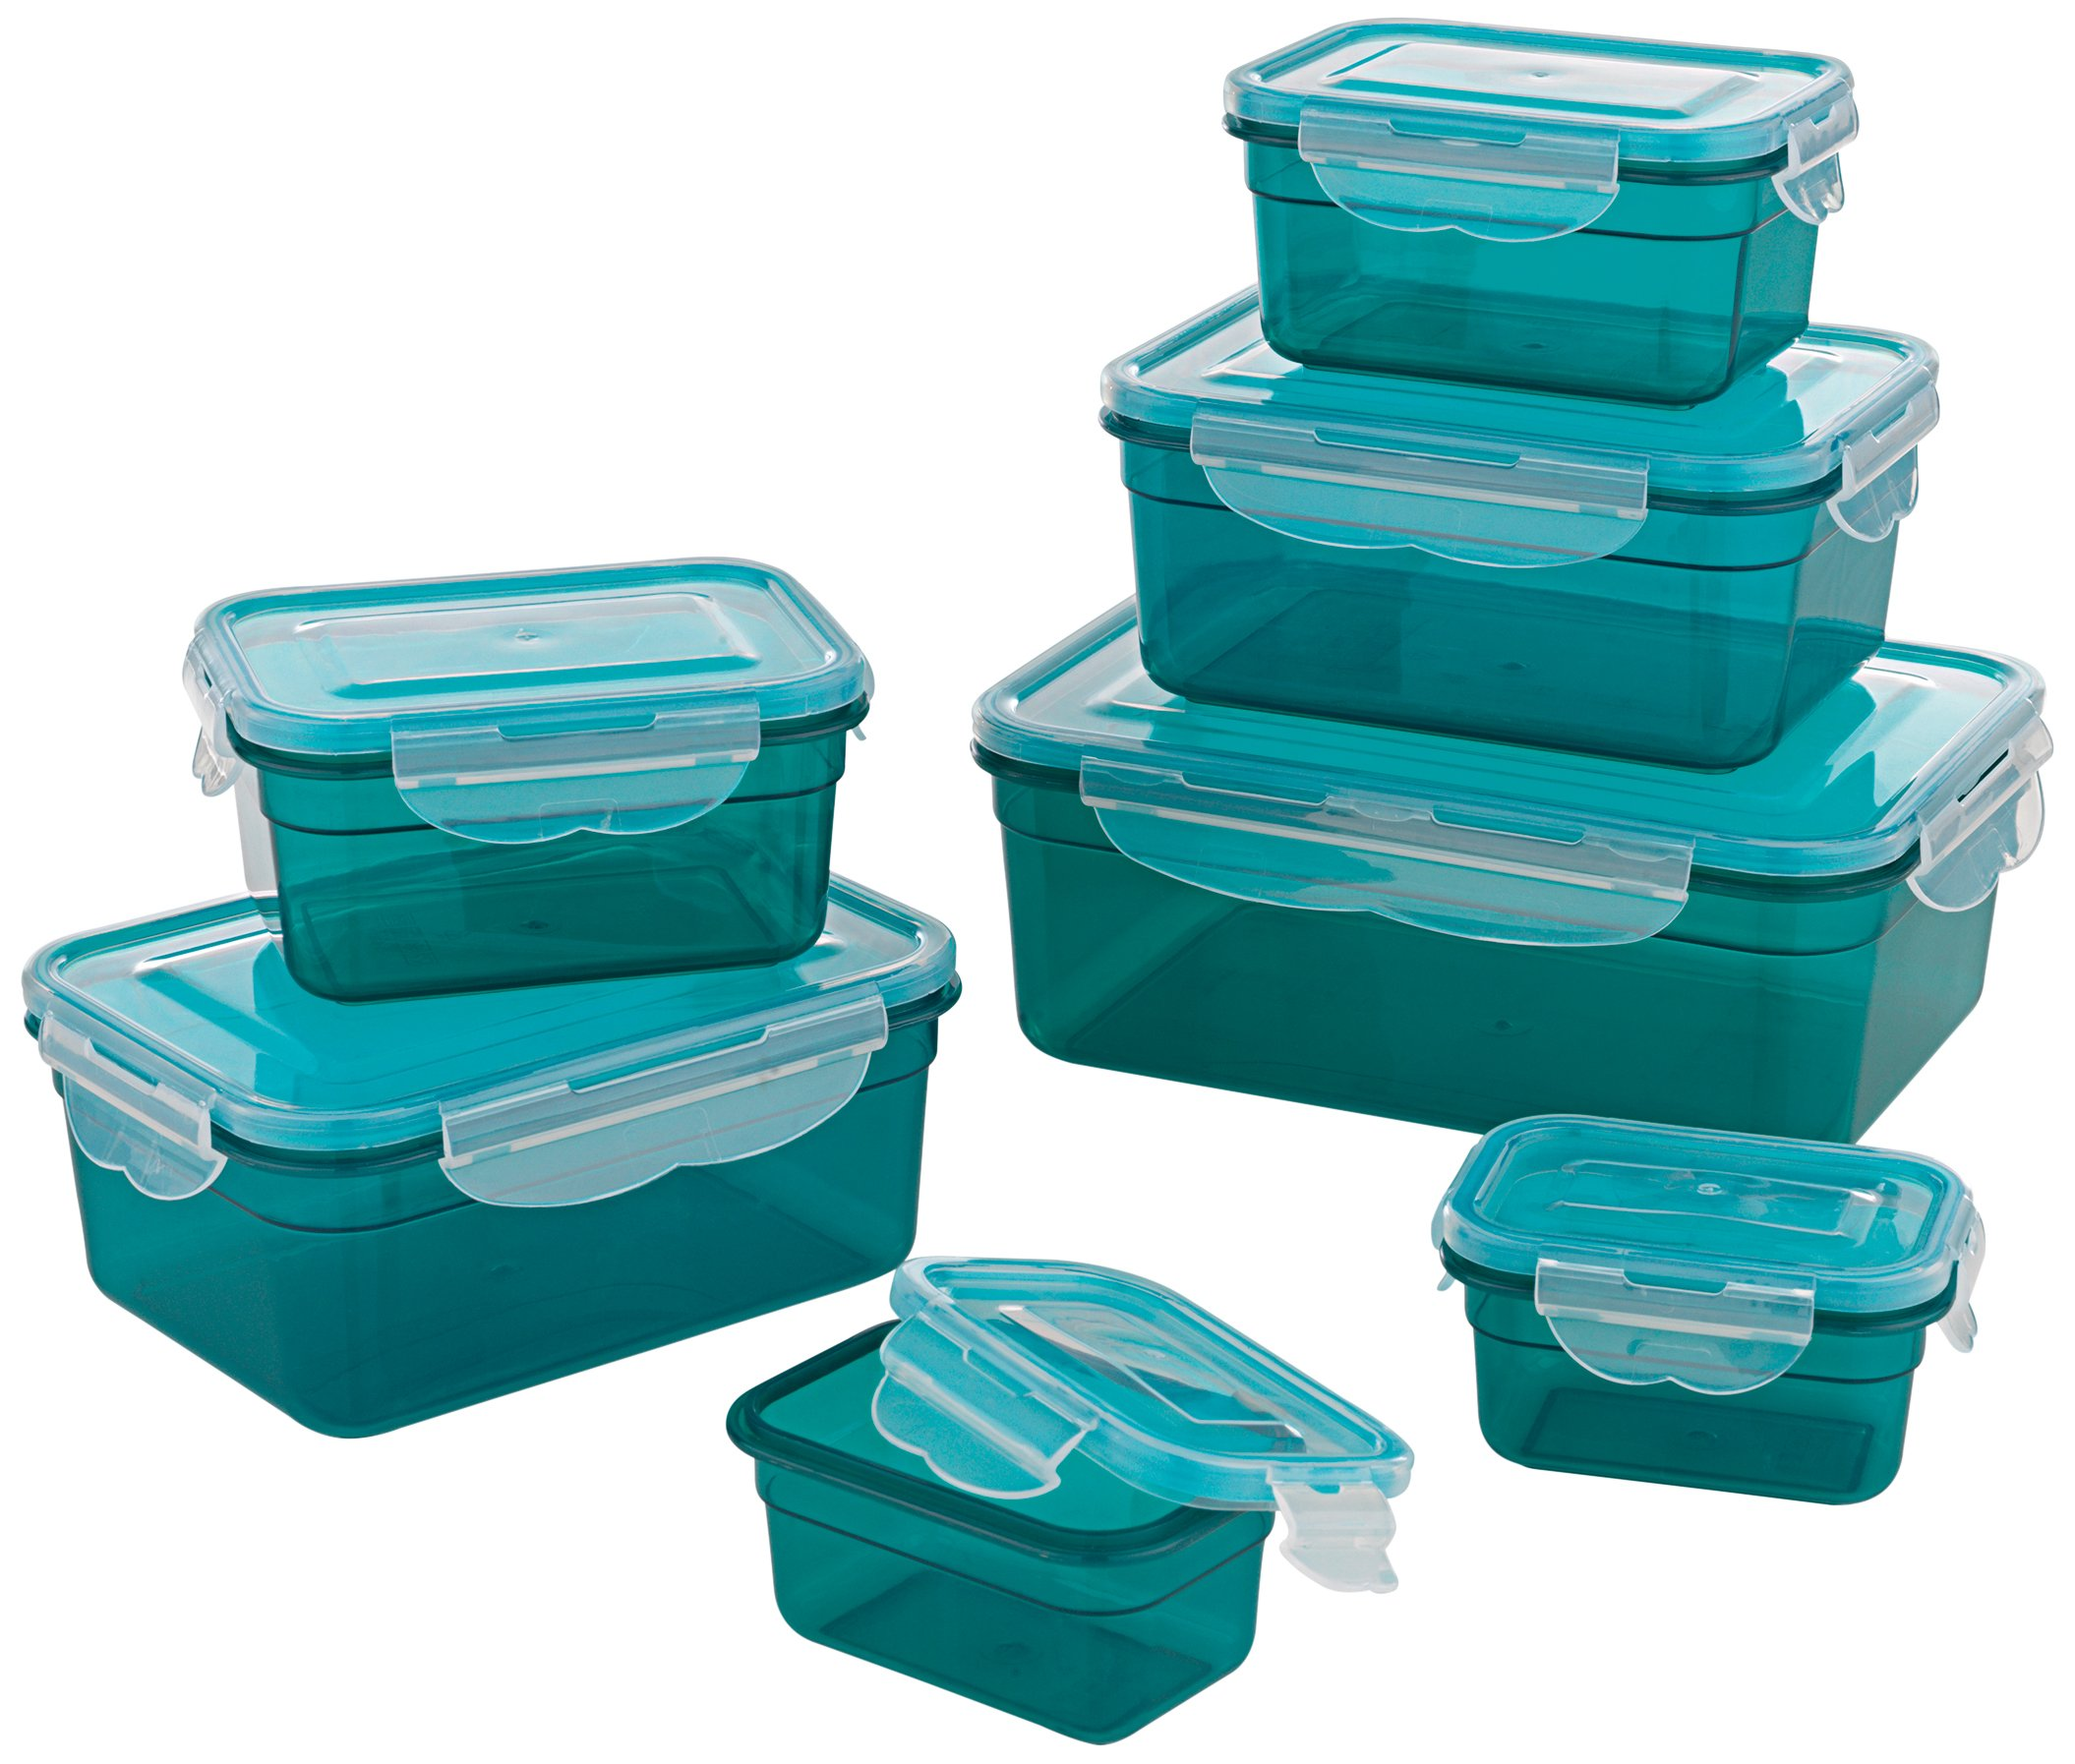 GOURMETmaxx 02914 BPA-Free Food Storage Container-Set, 14 Pieces | Suitable for Dishwasher, Freezer, Microwave | Clip Lid Food Container | Air tight, liquid proofed and Aroma Safe